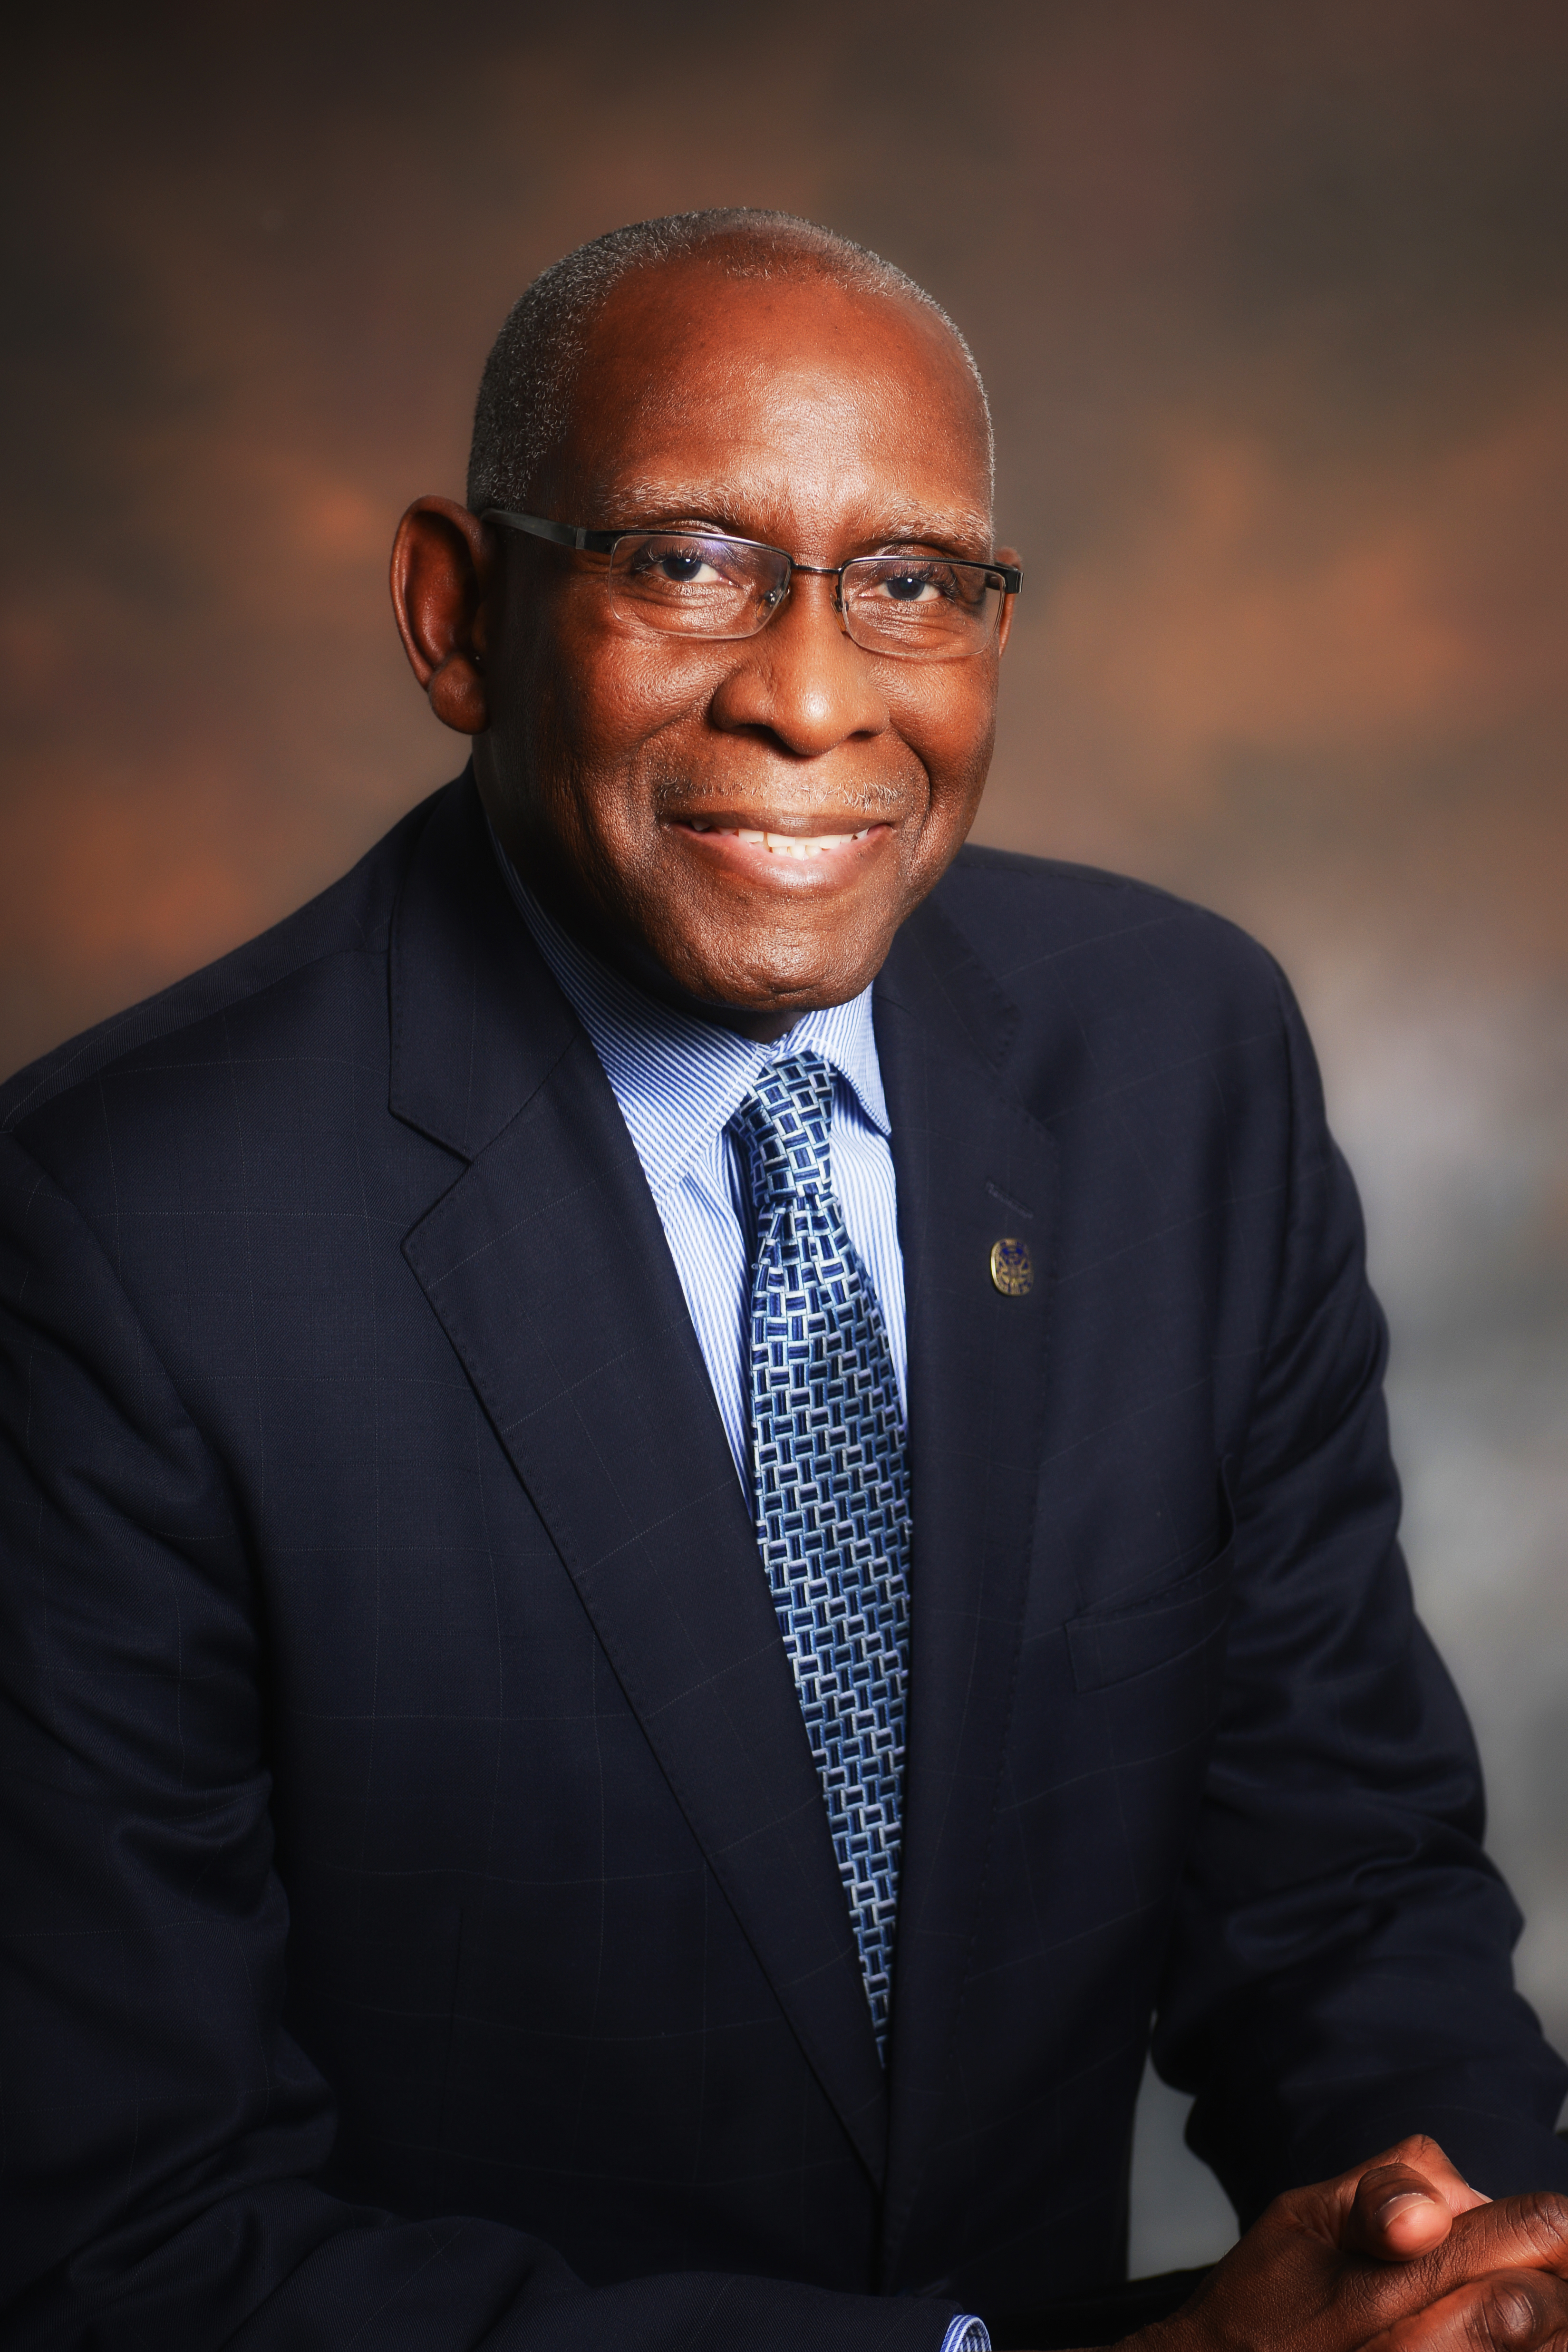 David Hall, Ph.D., president of the University of the Virgin Islands